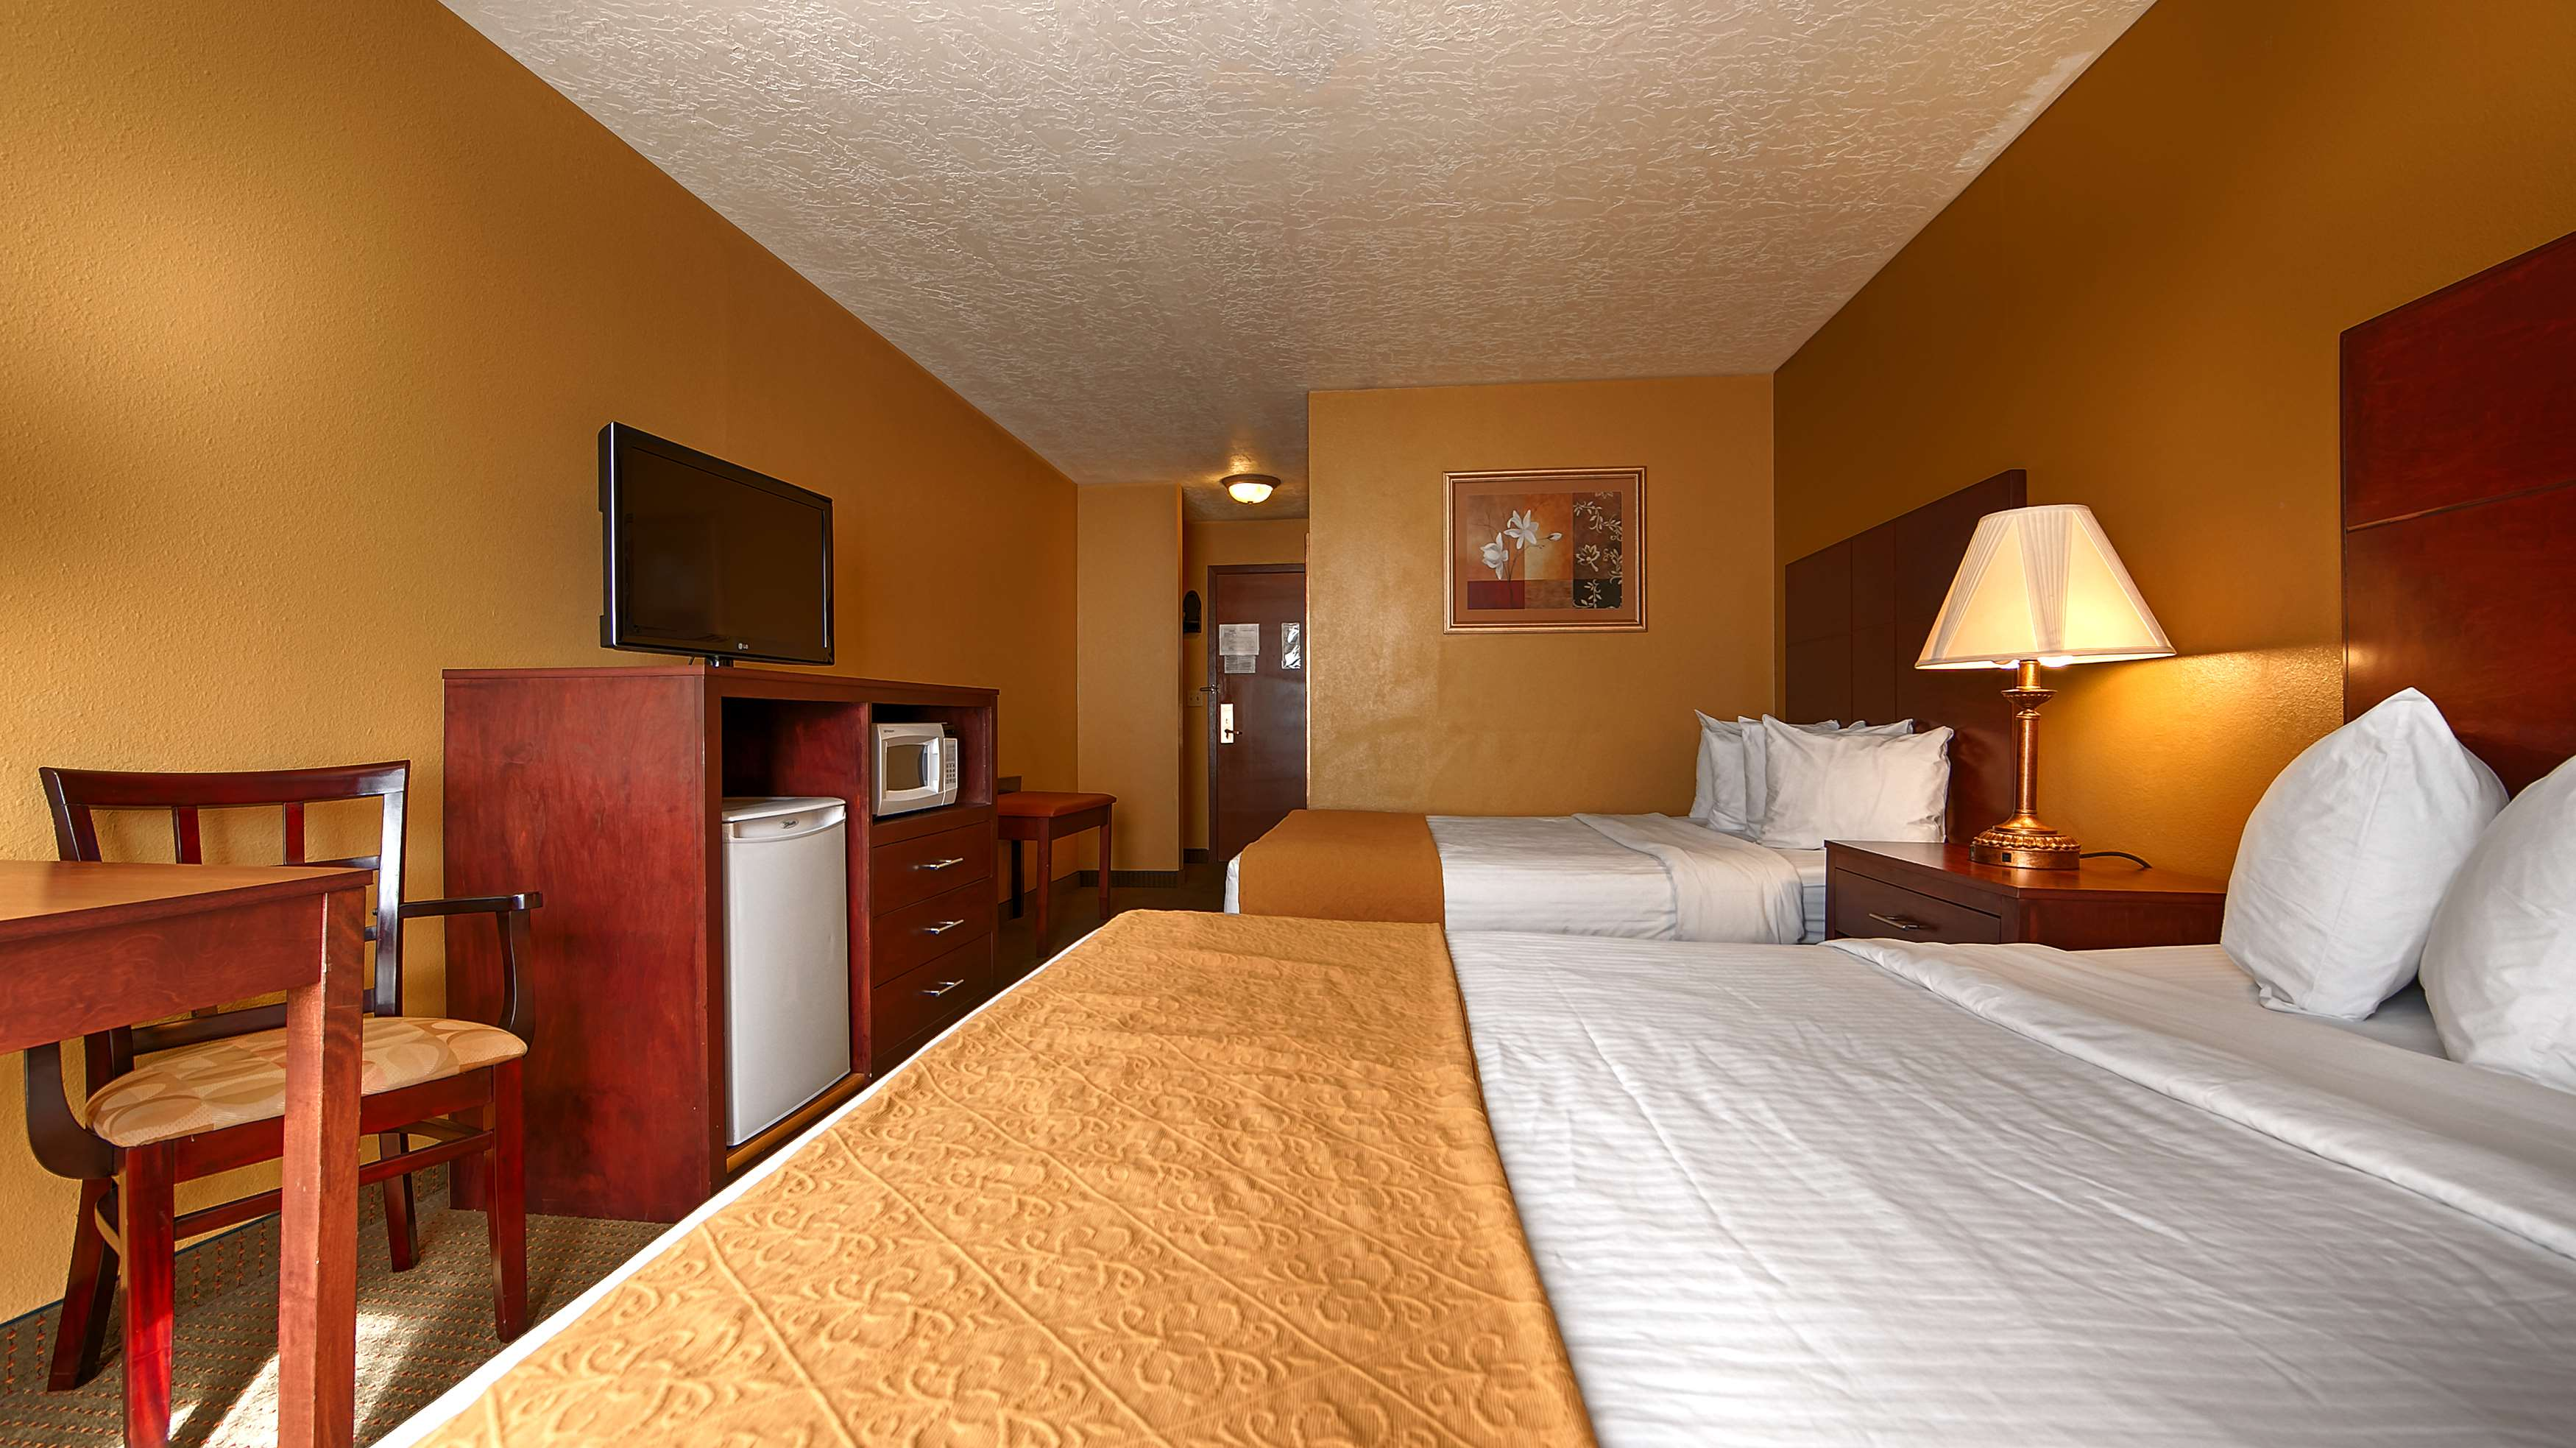 resort sol hotel del comforter az suites s near green casino hotels valley tucson other inn comfort at mall